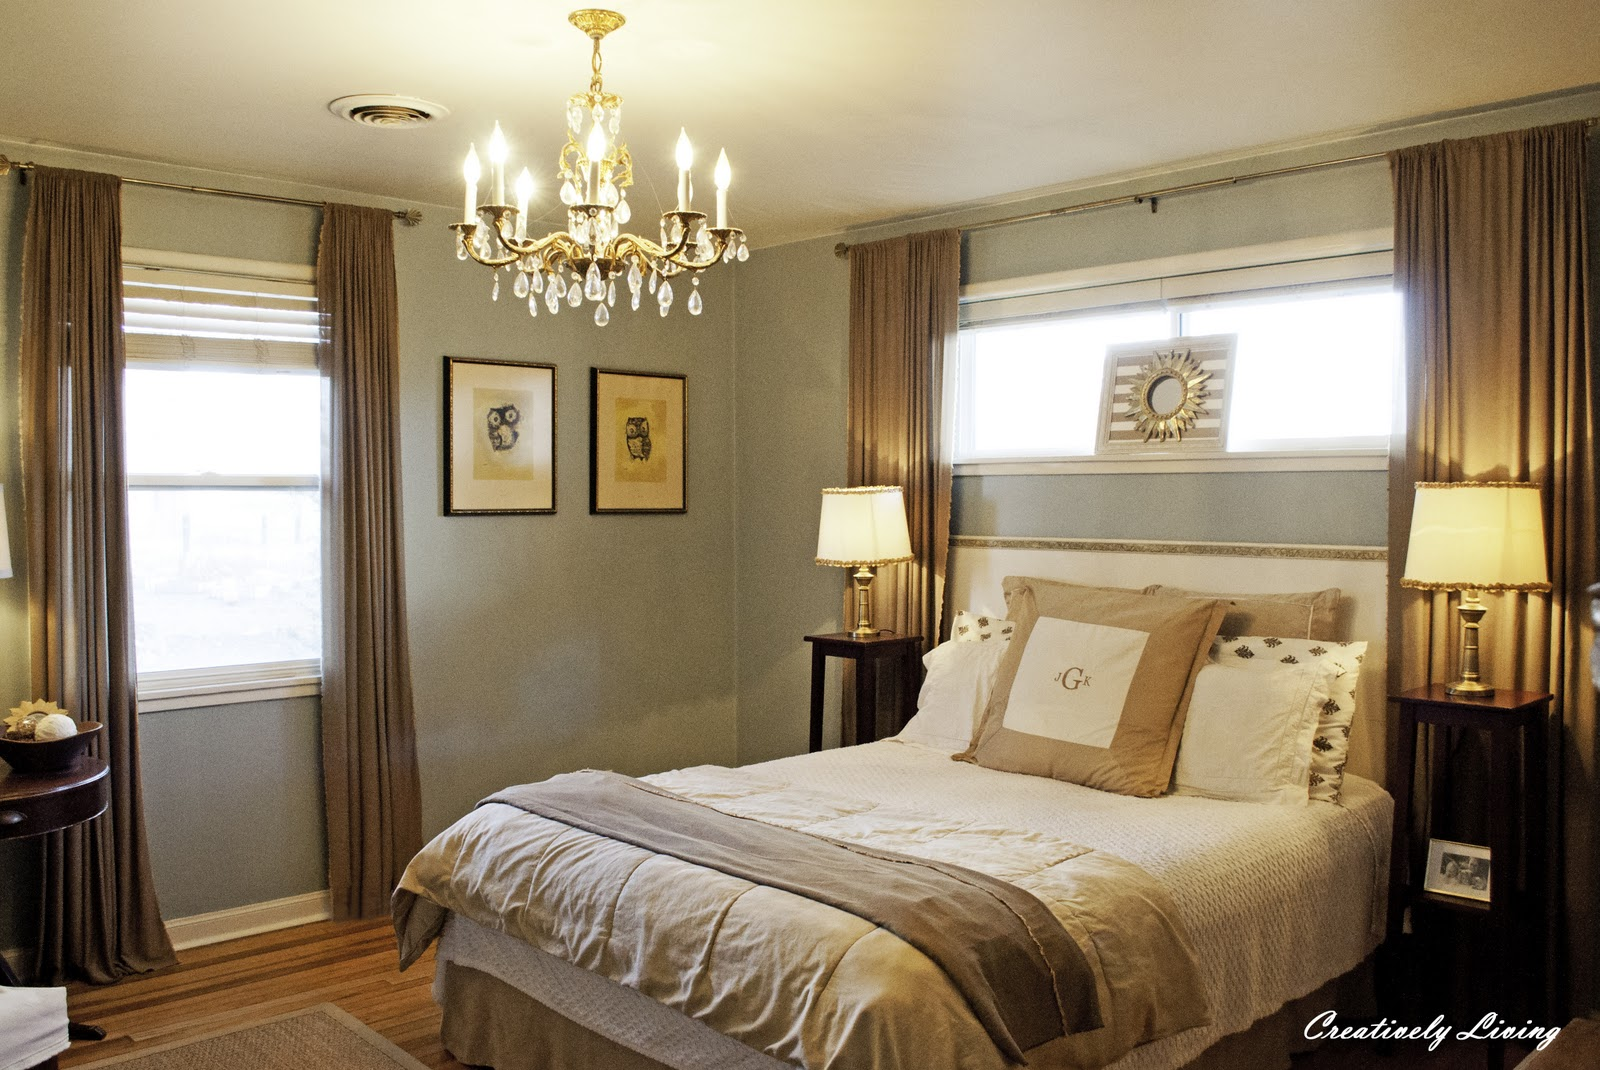 From Gardners 2 Bergers Reader Feater Romantic Bedroom